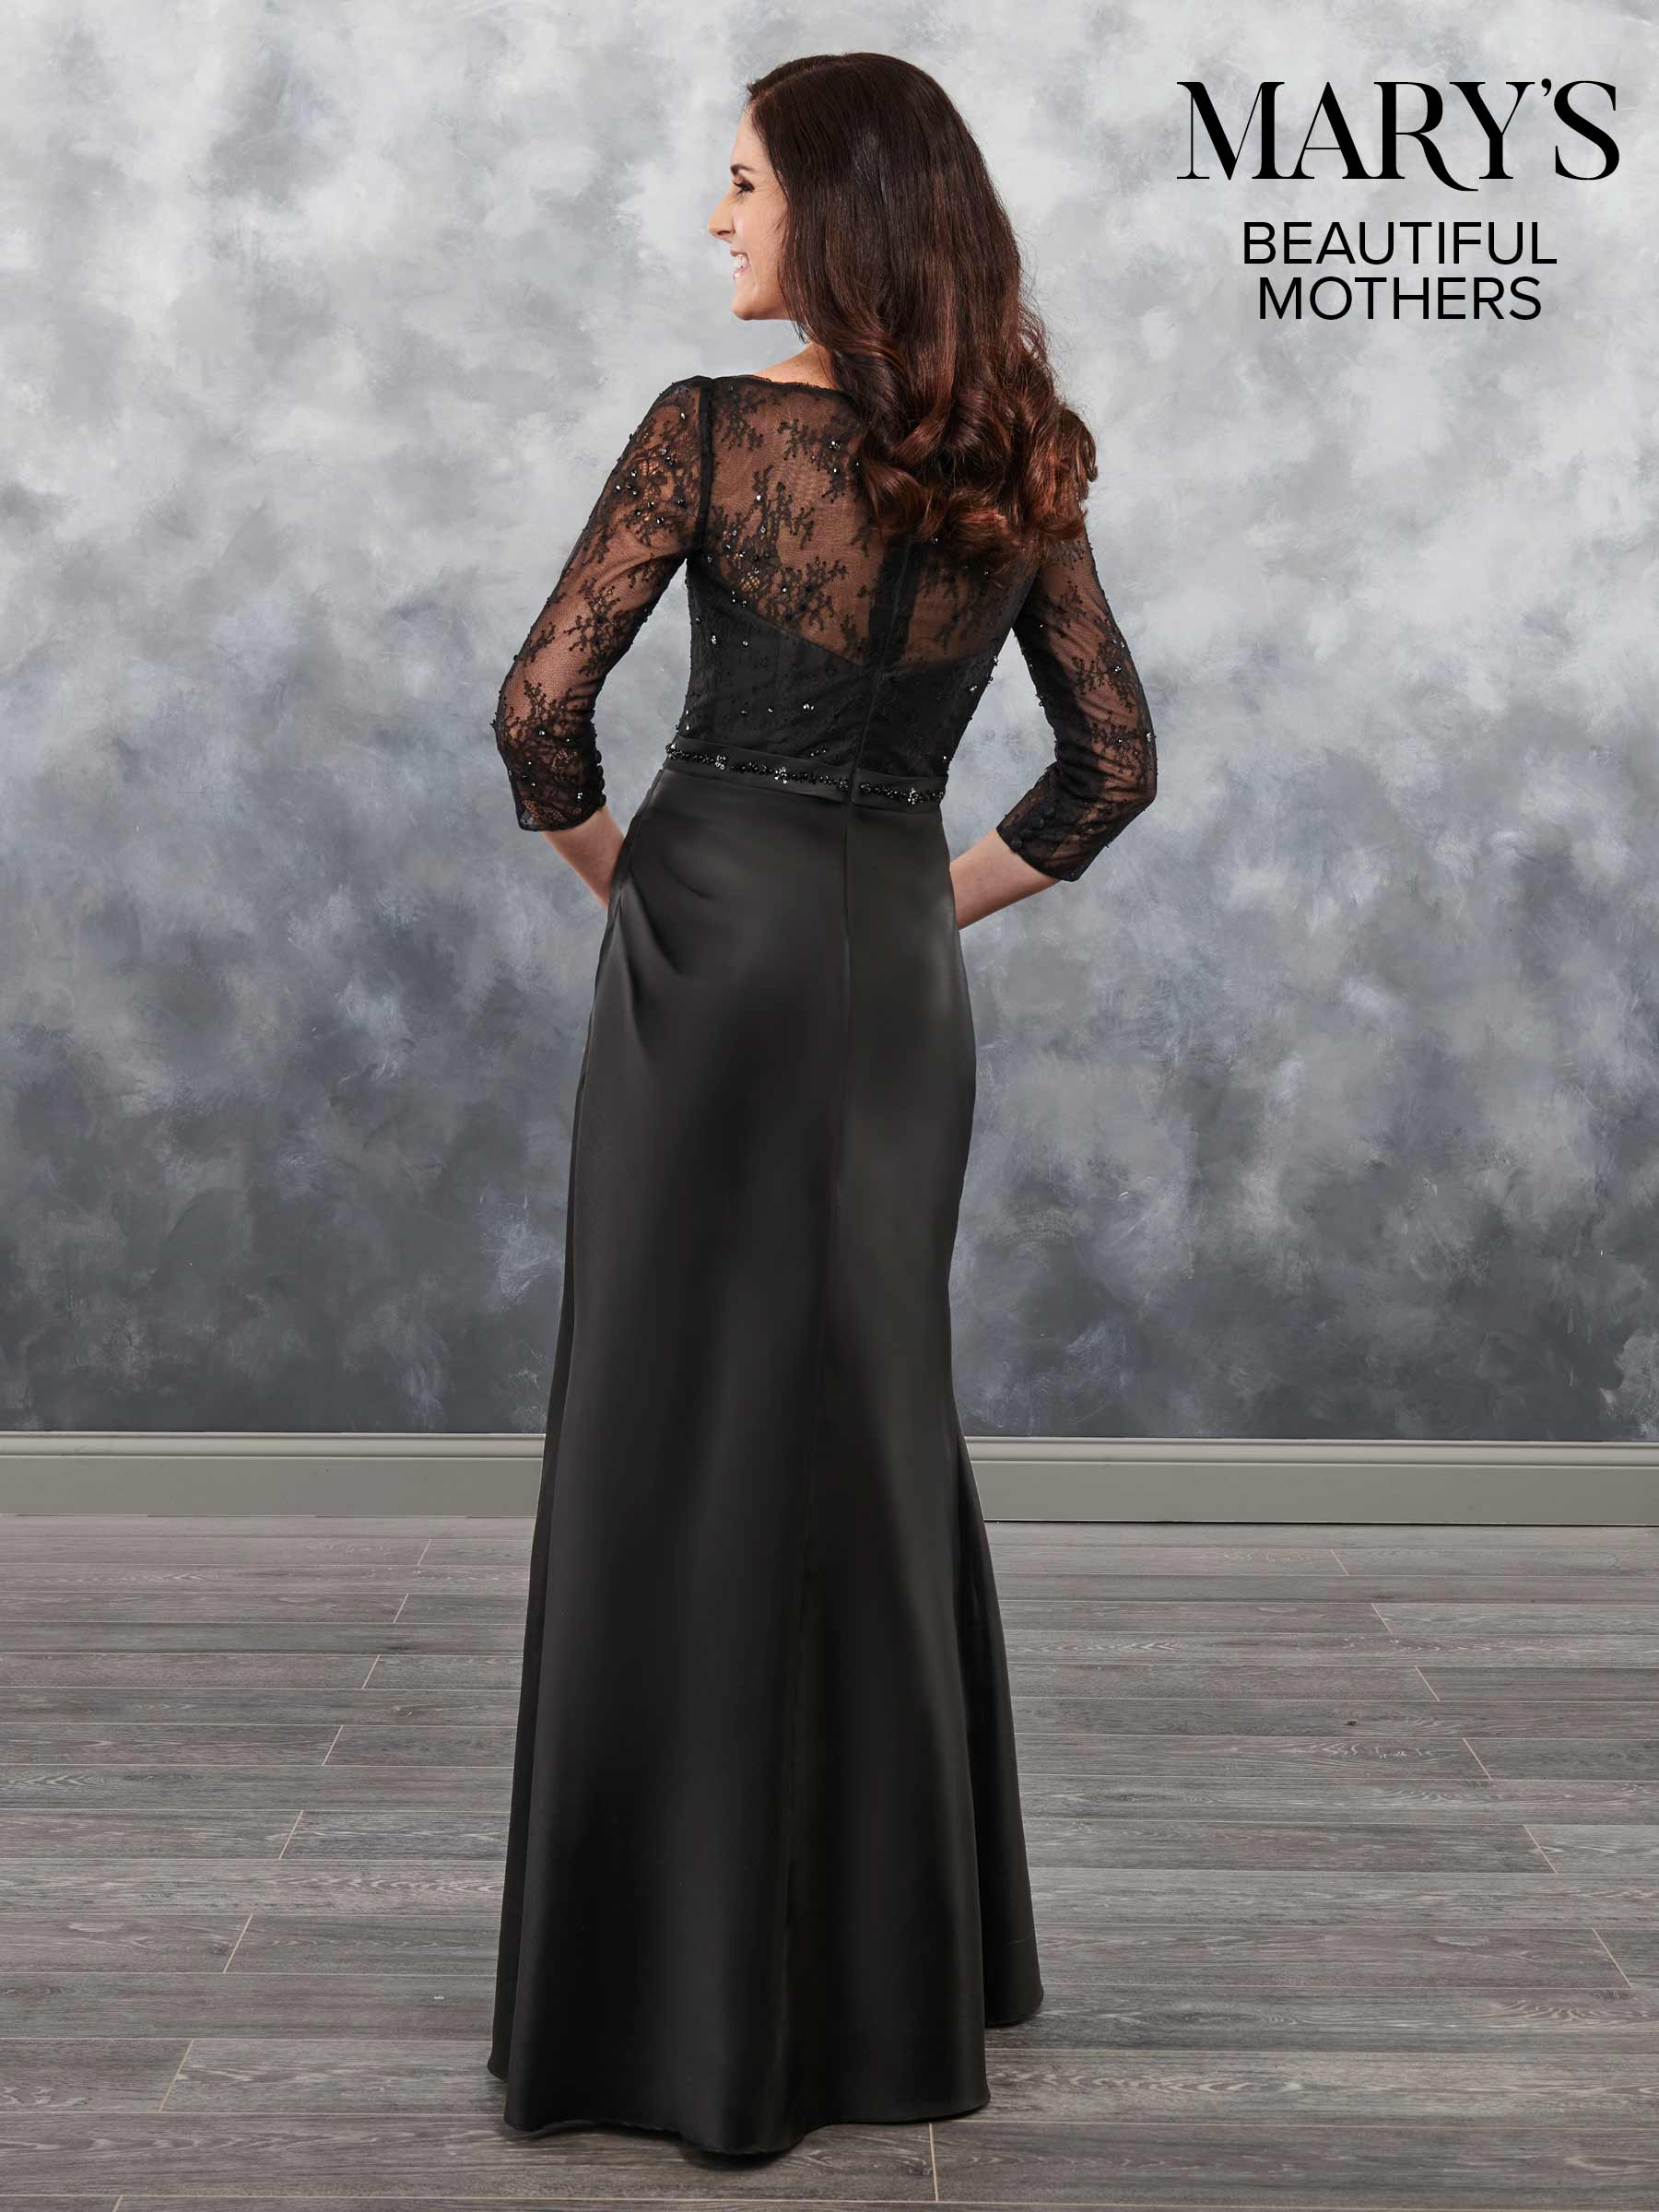 Mother Of The Bride Dresses | Beautiful Mothers | Style - MB8032